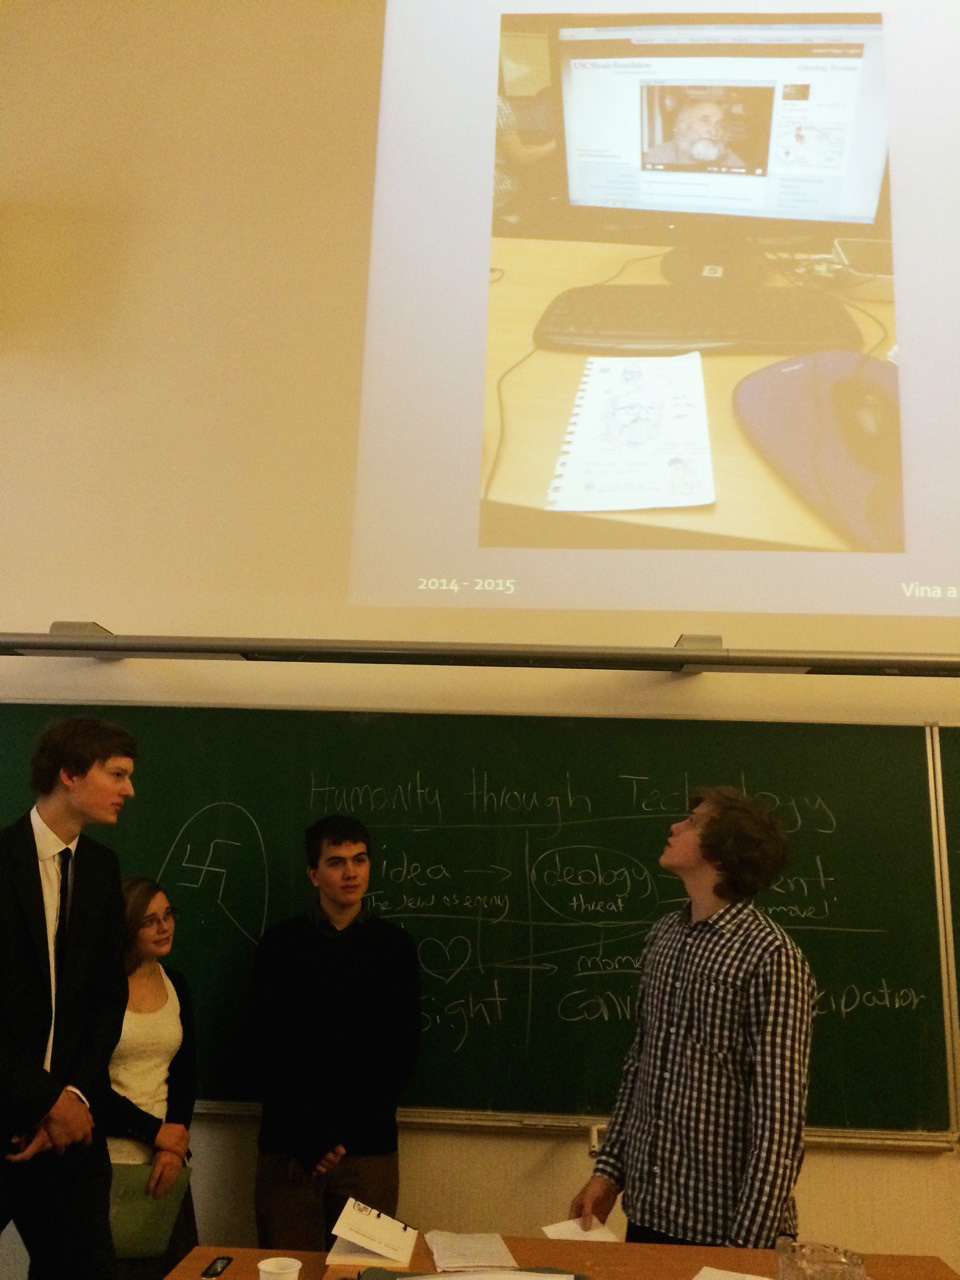 Students of the Archbishop gymnasium in Prague discuss their testimony-based projects probing the concepts of Guilt and Forgiveness